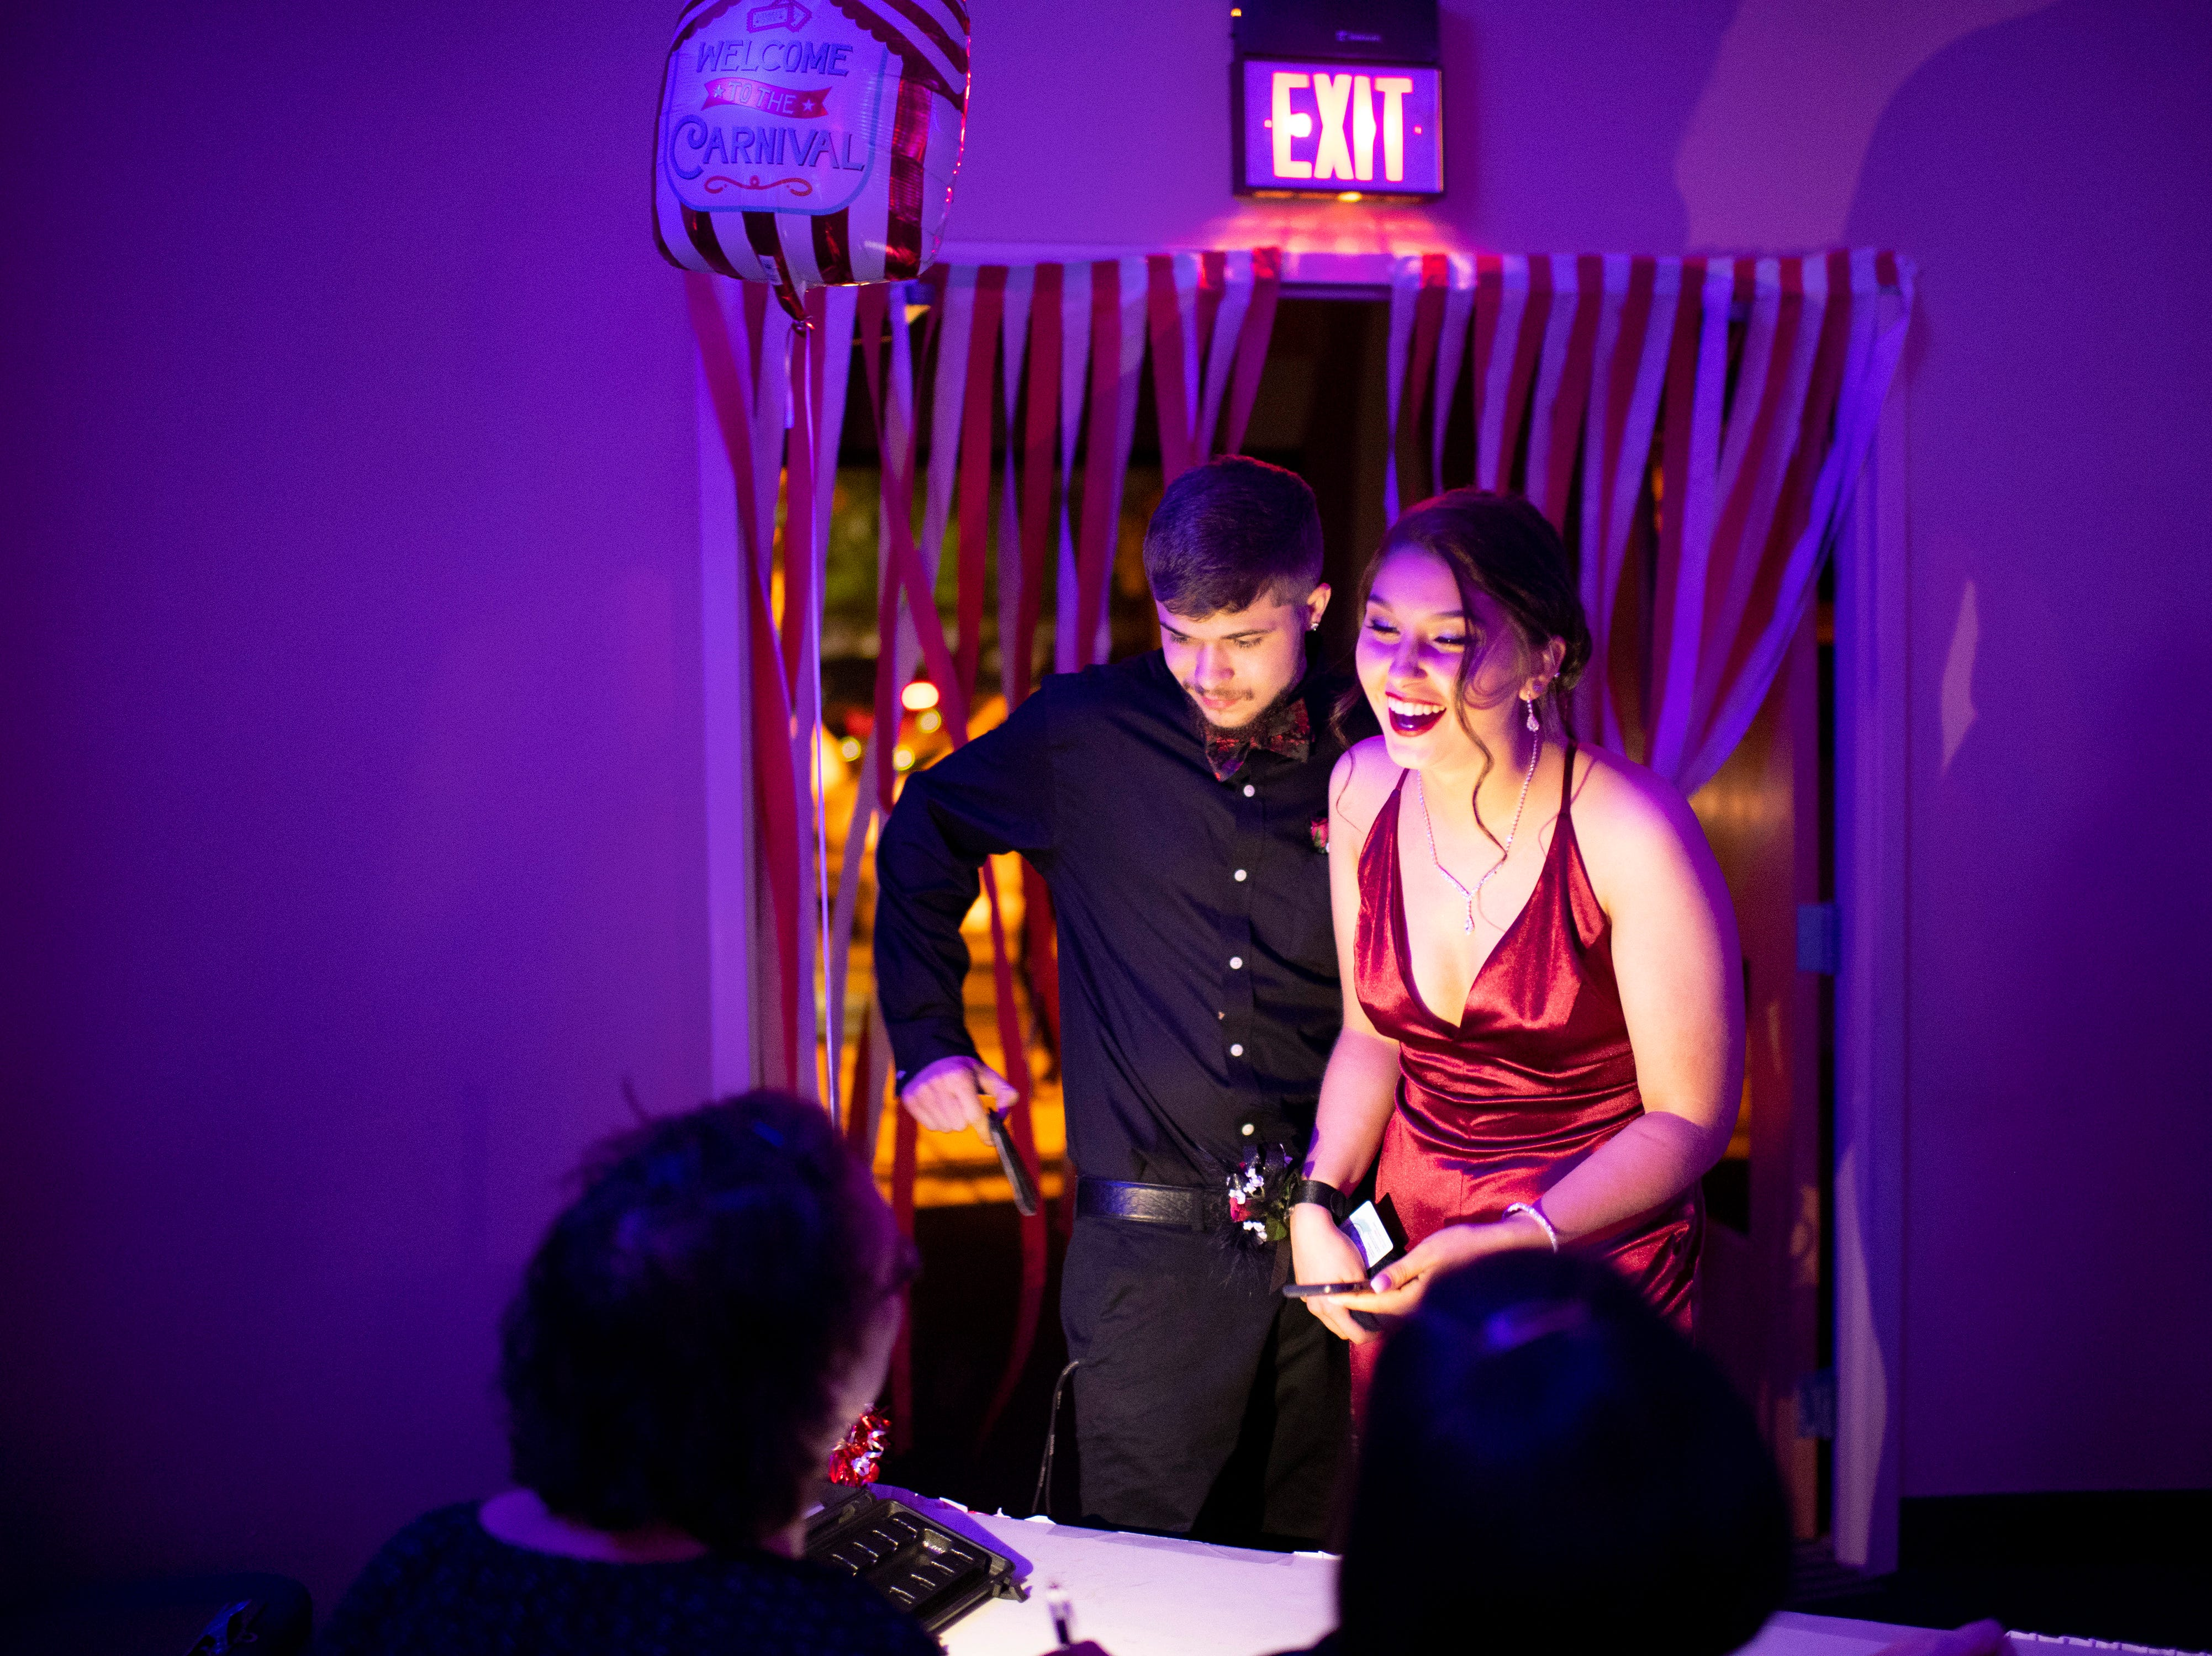 """Harrison seniors Cassidy Shafer and Sebastian White check in to """"The Greatest Prom on Earth"""" at Milestones, Saturday night, April 13, 2019."""